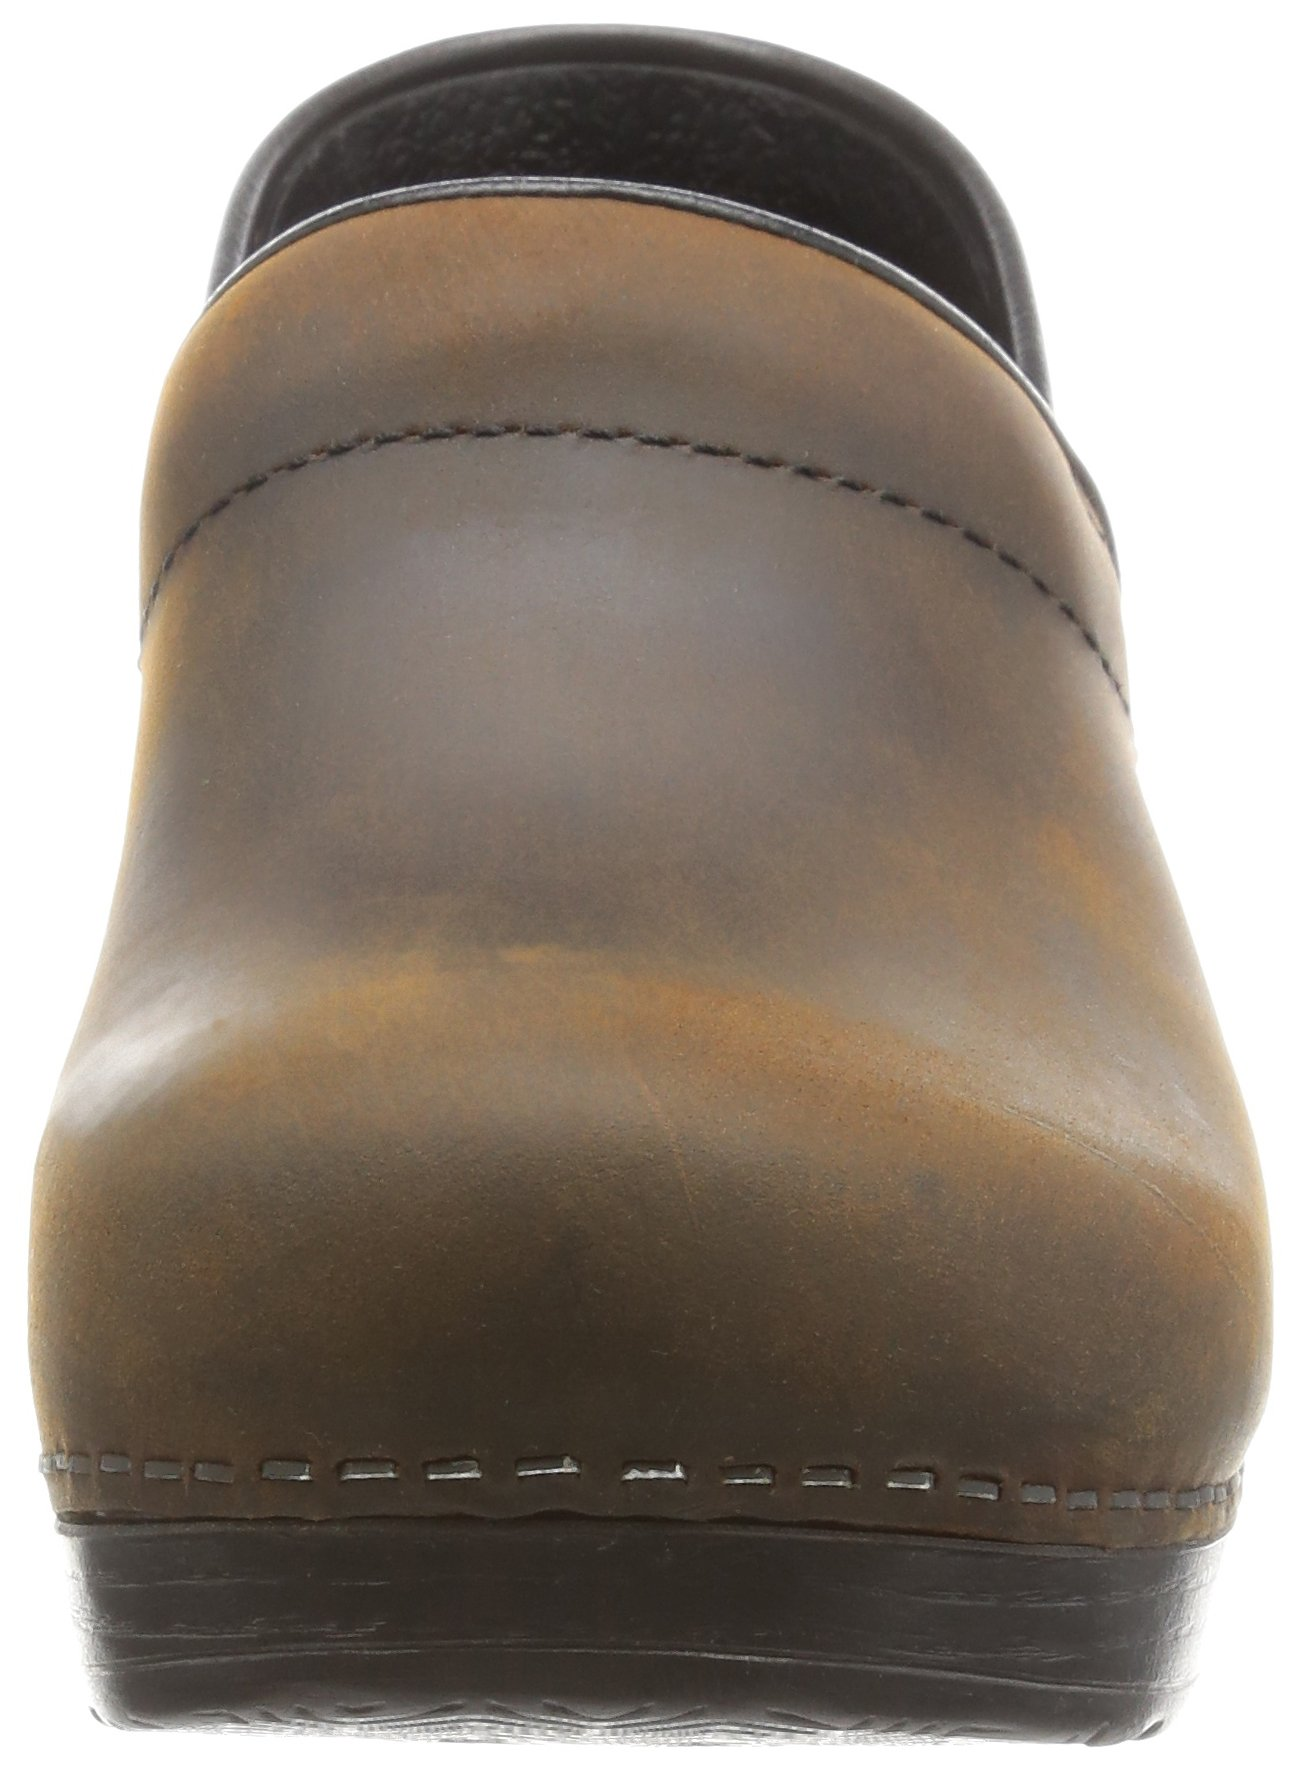 Dansko Women's Professional Oiled Leather Clog,Antique Brown/Black,35 EU / 4.5-5 B(M) US by Dansko (Image #4)